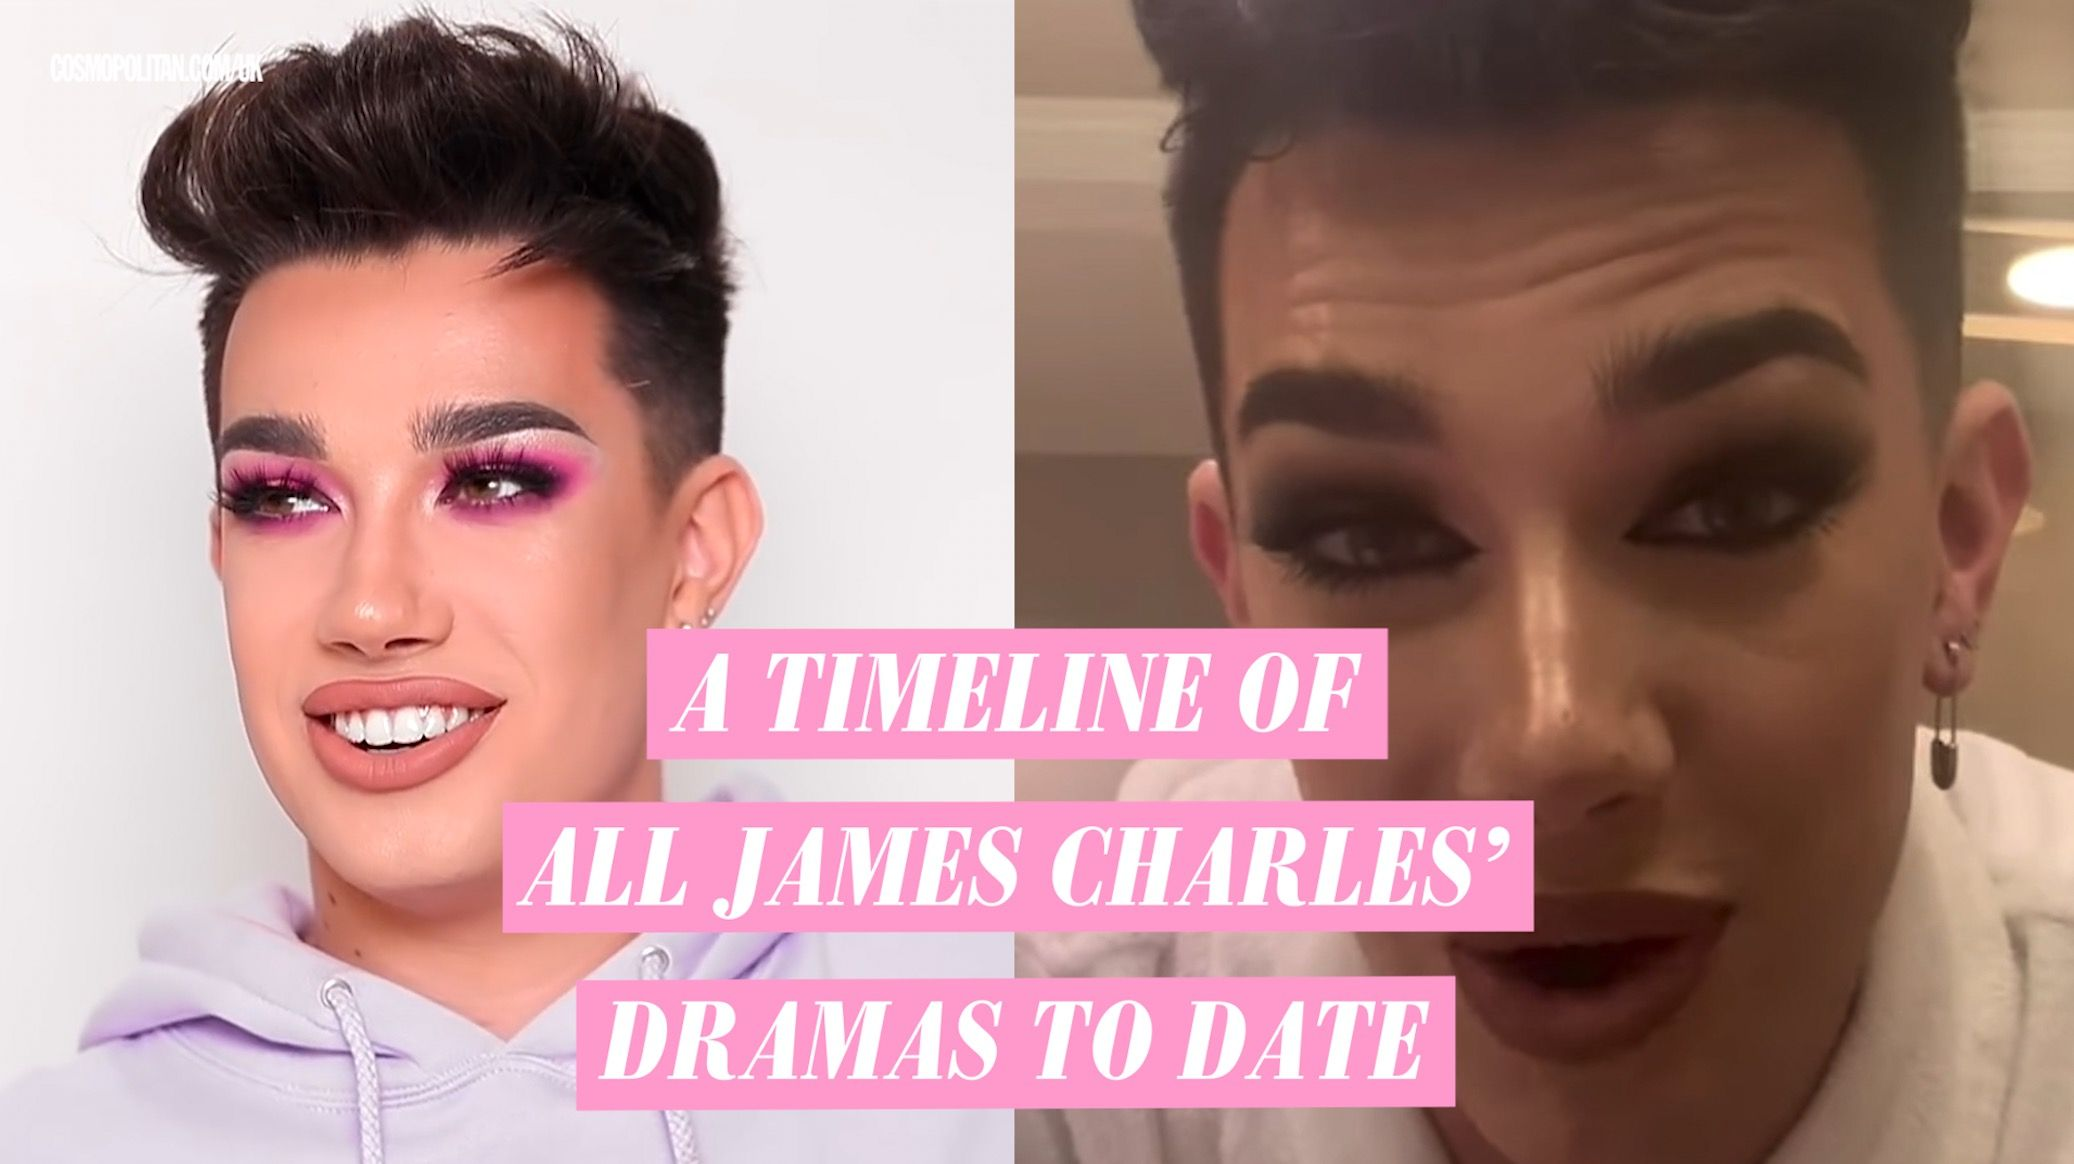 James Charles claps back at claims that Kylie Jenner 'unfollowed' him